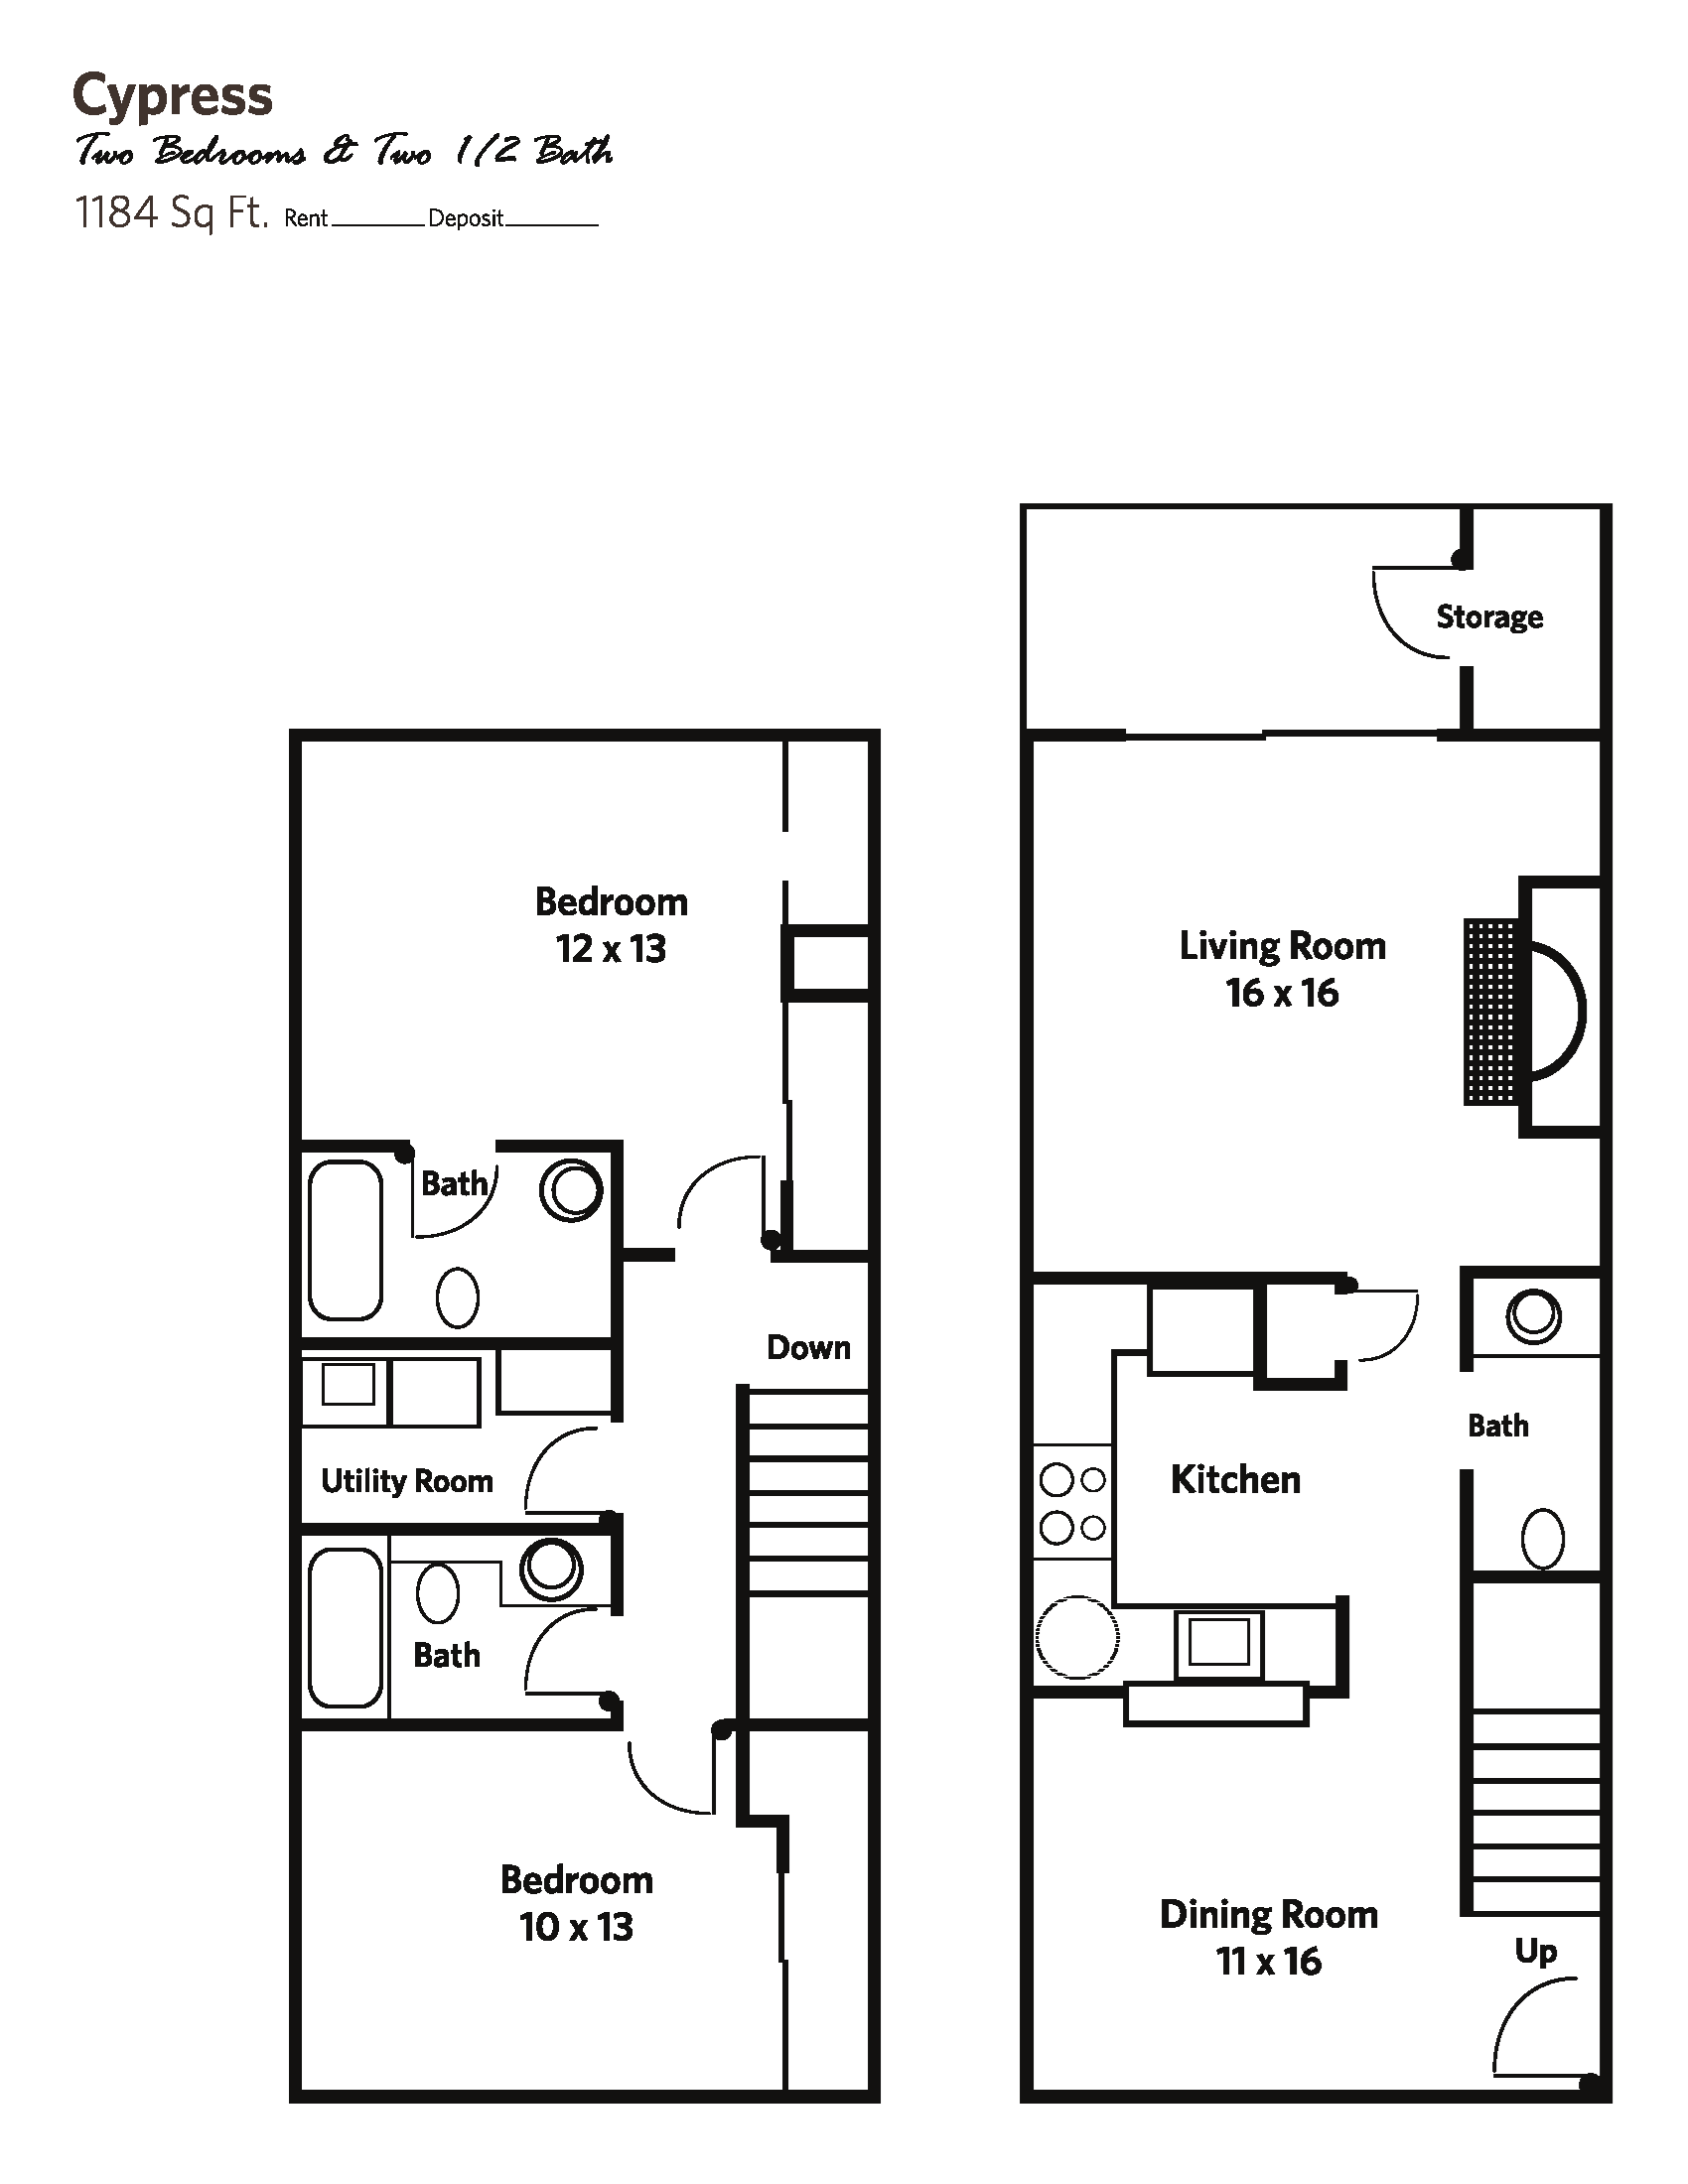 CYPRESS (2 bed + 2.5 bath) - Townhomes Floor Plan 4